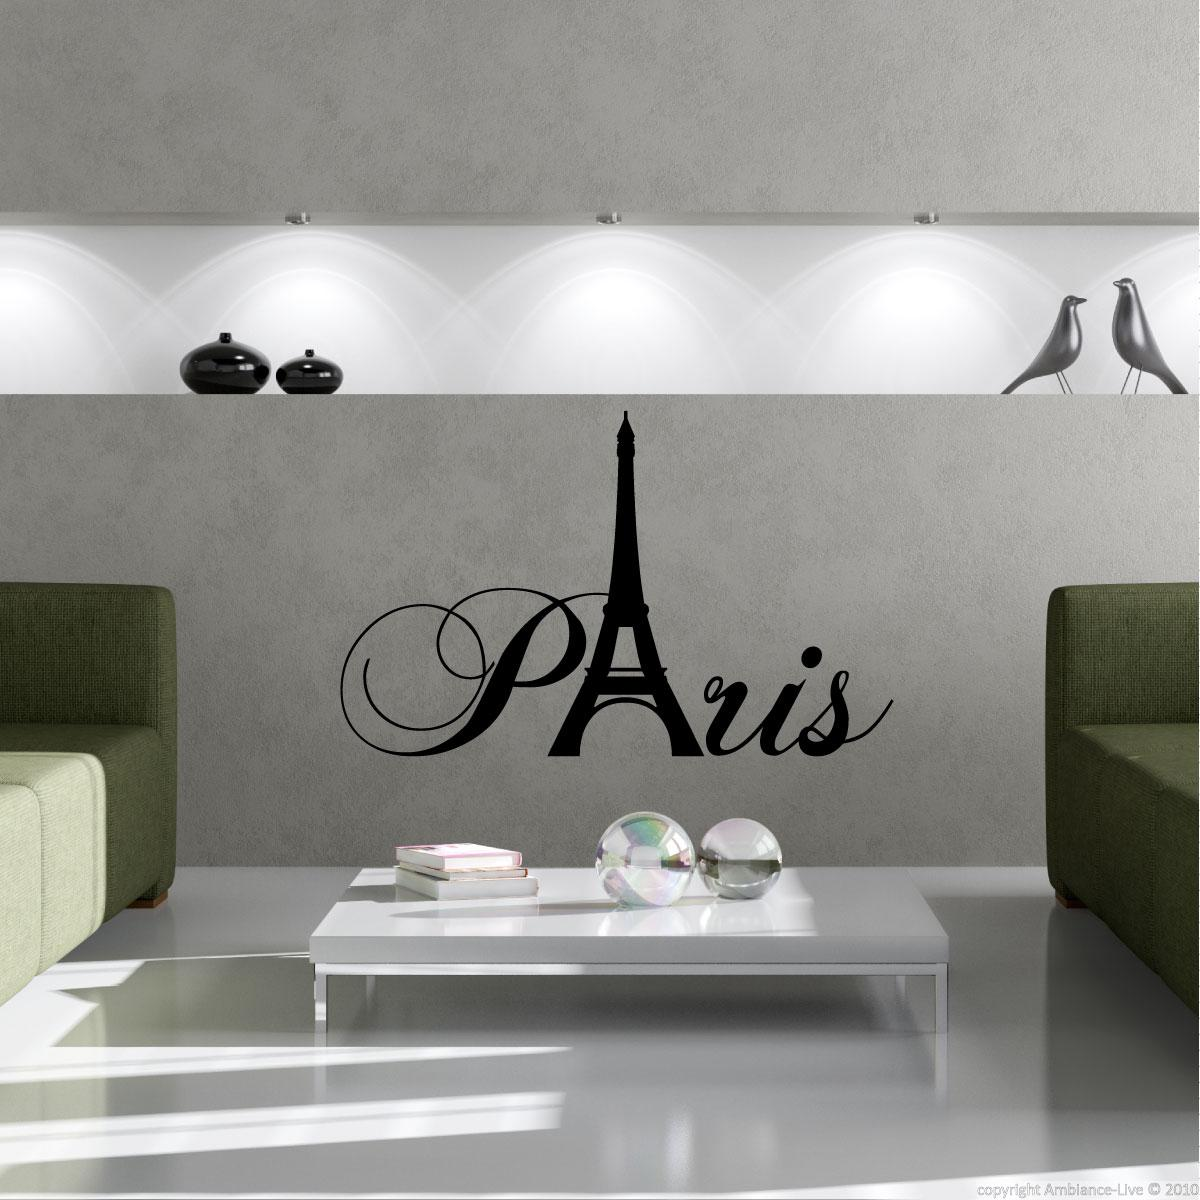 City wall decals wall decal paris with eiffel tower ambiance - Stickers muraux paris ...